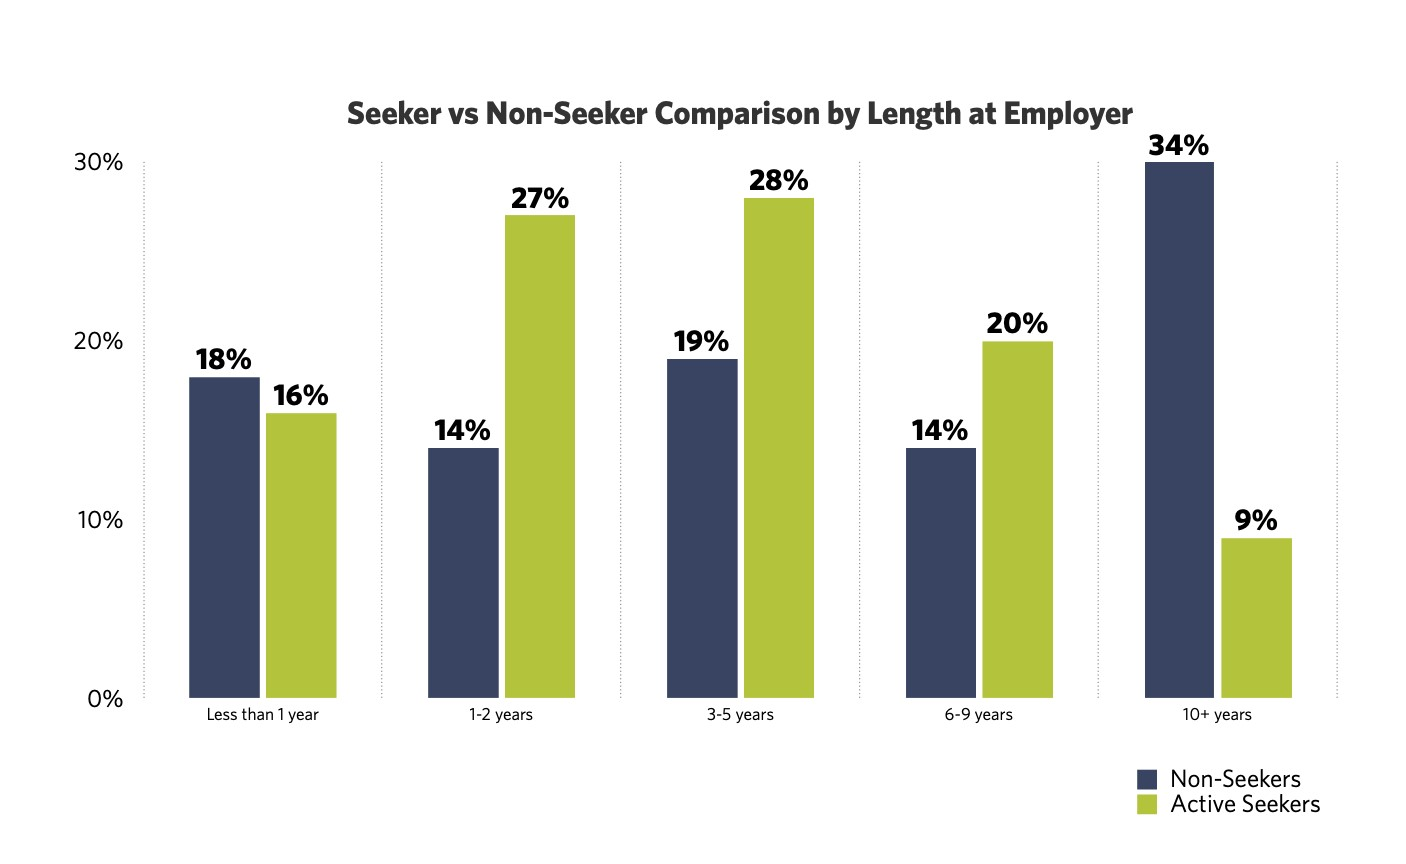 Length of Time Spent at Employer